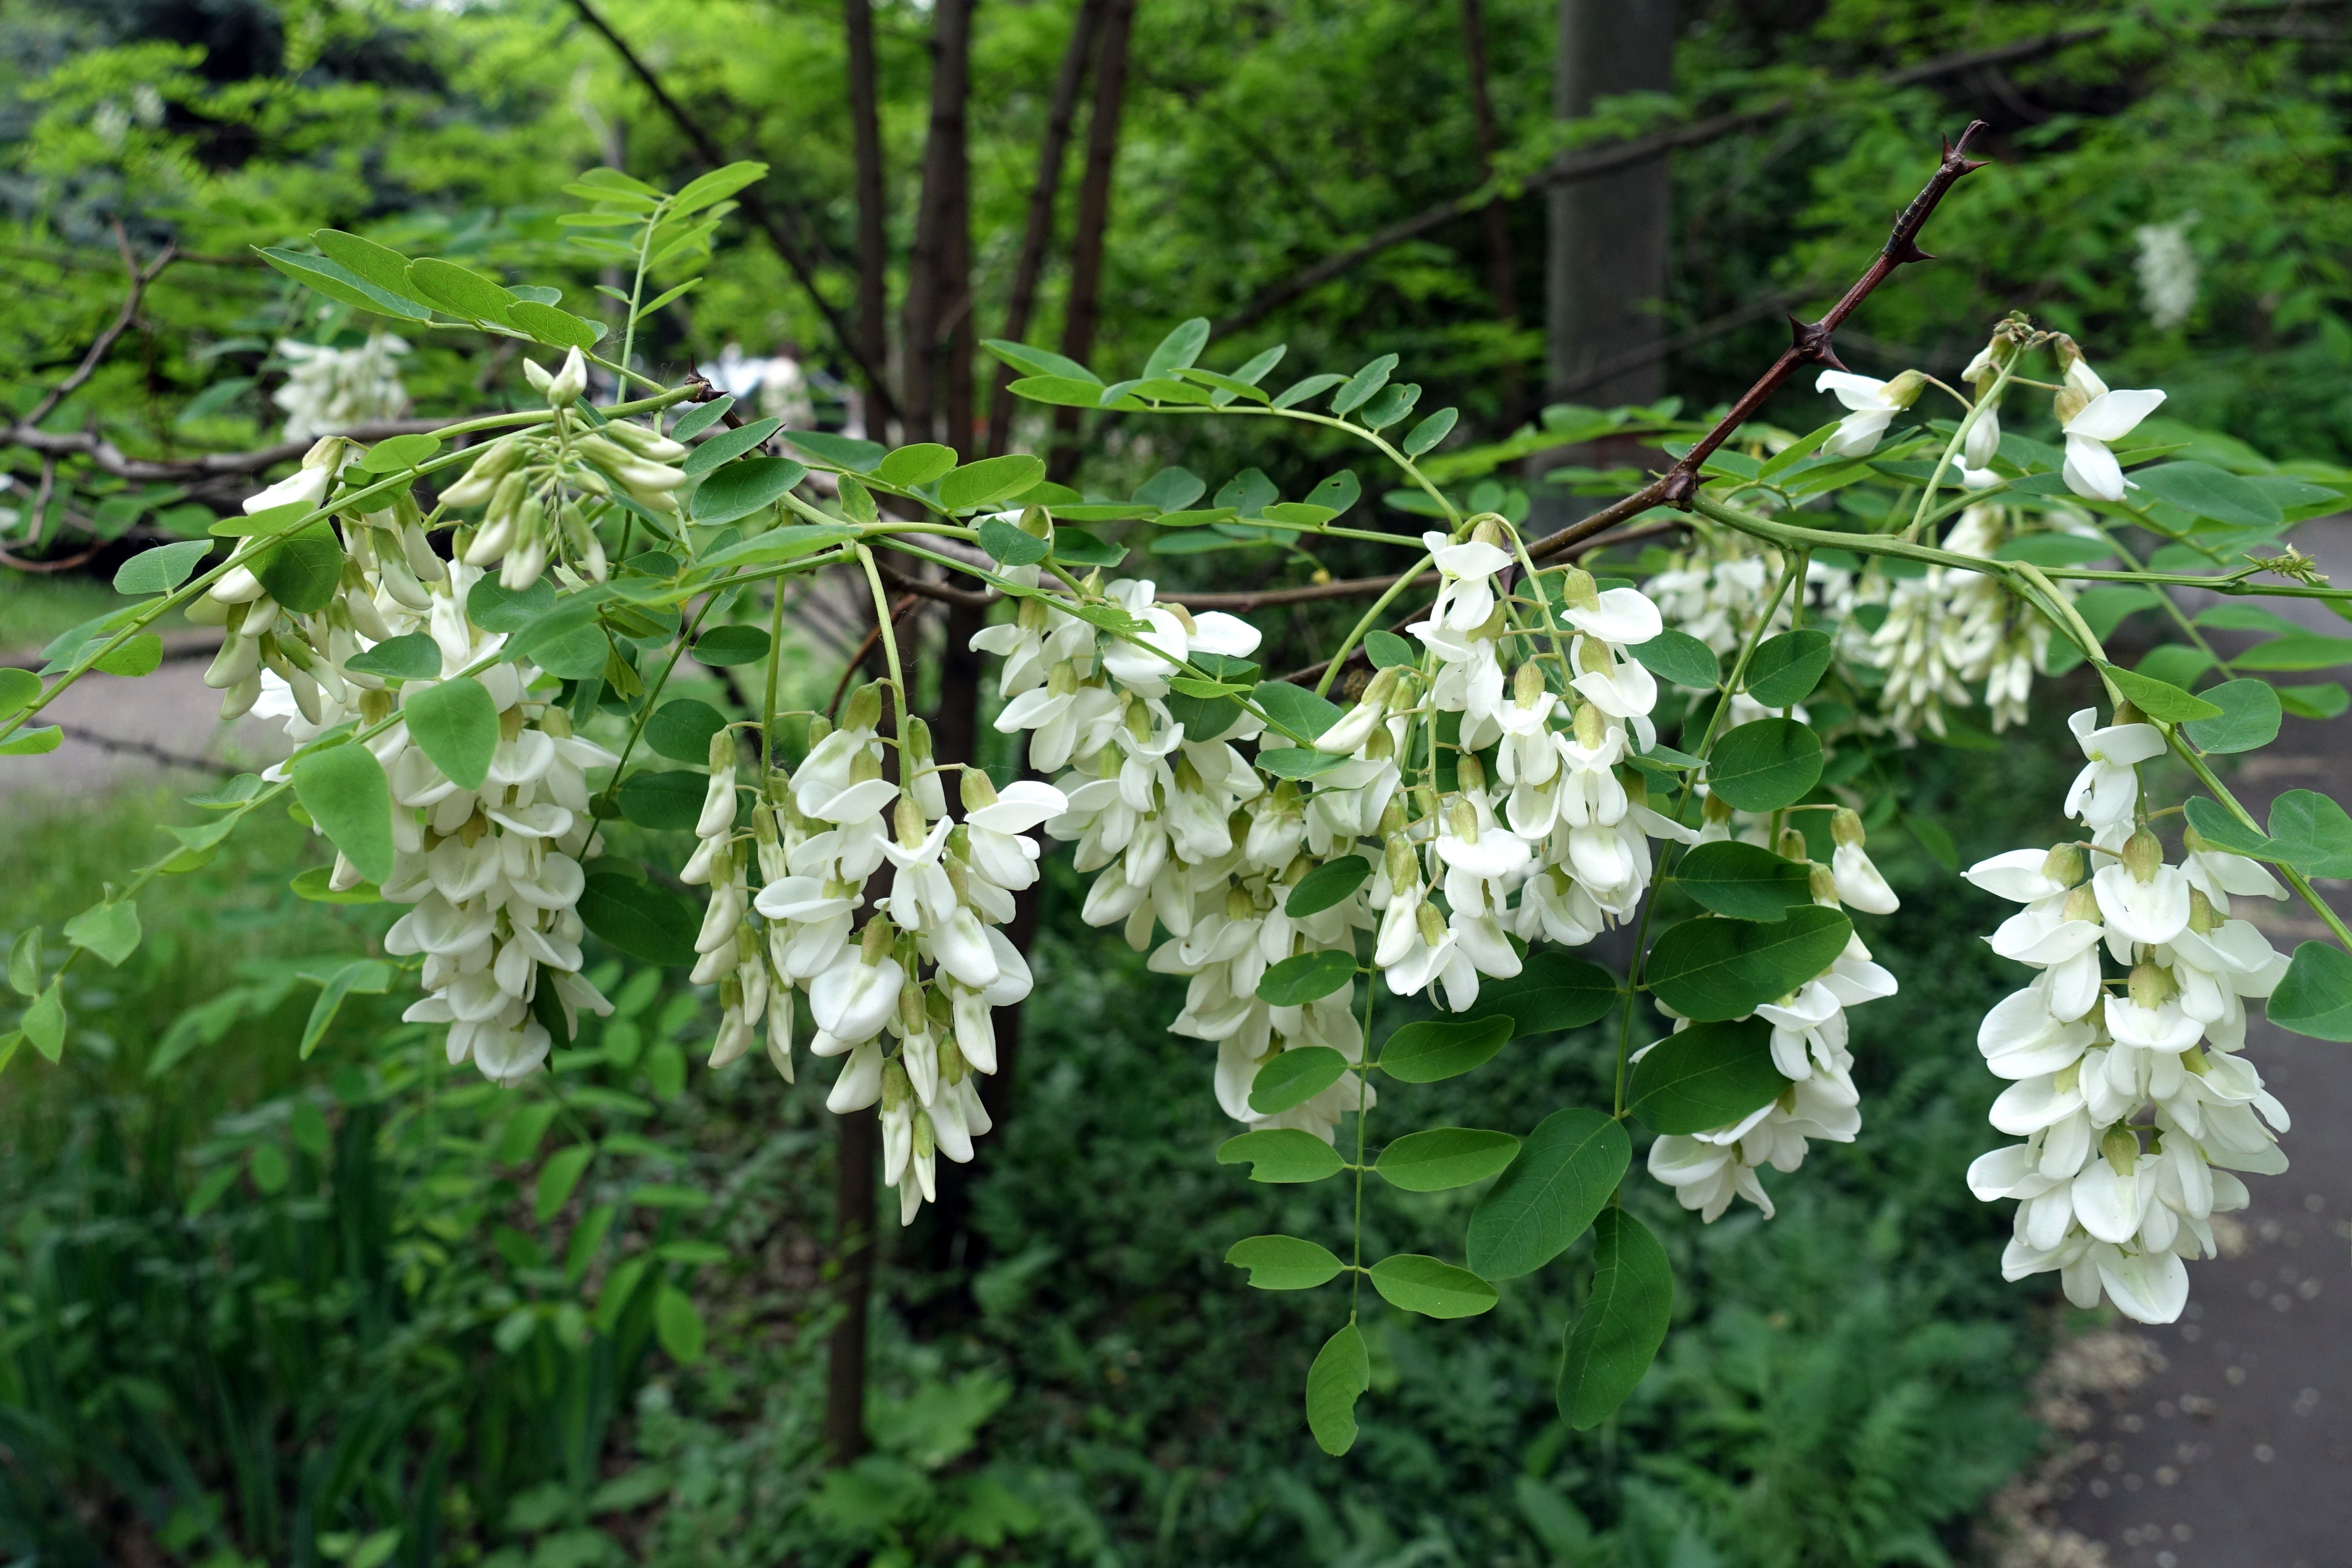 A branch of the black locust with white flowers in the spring